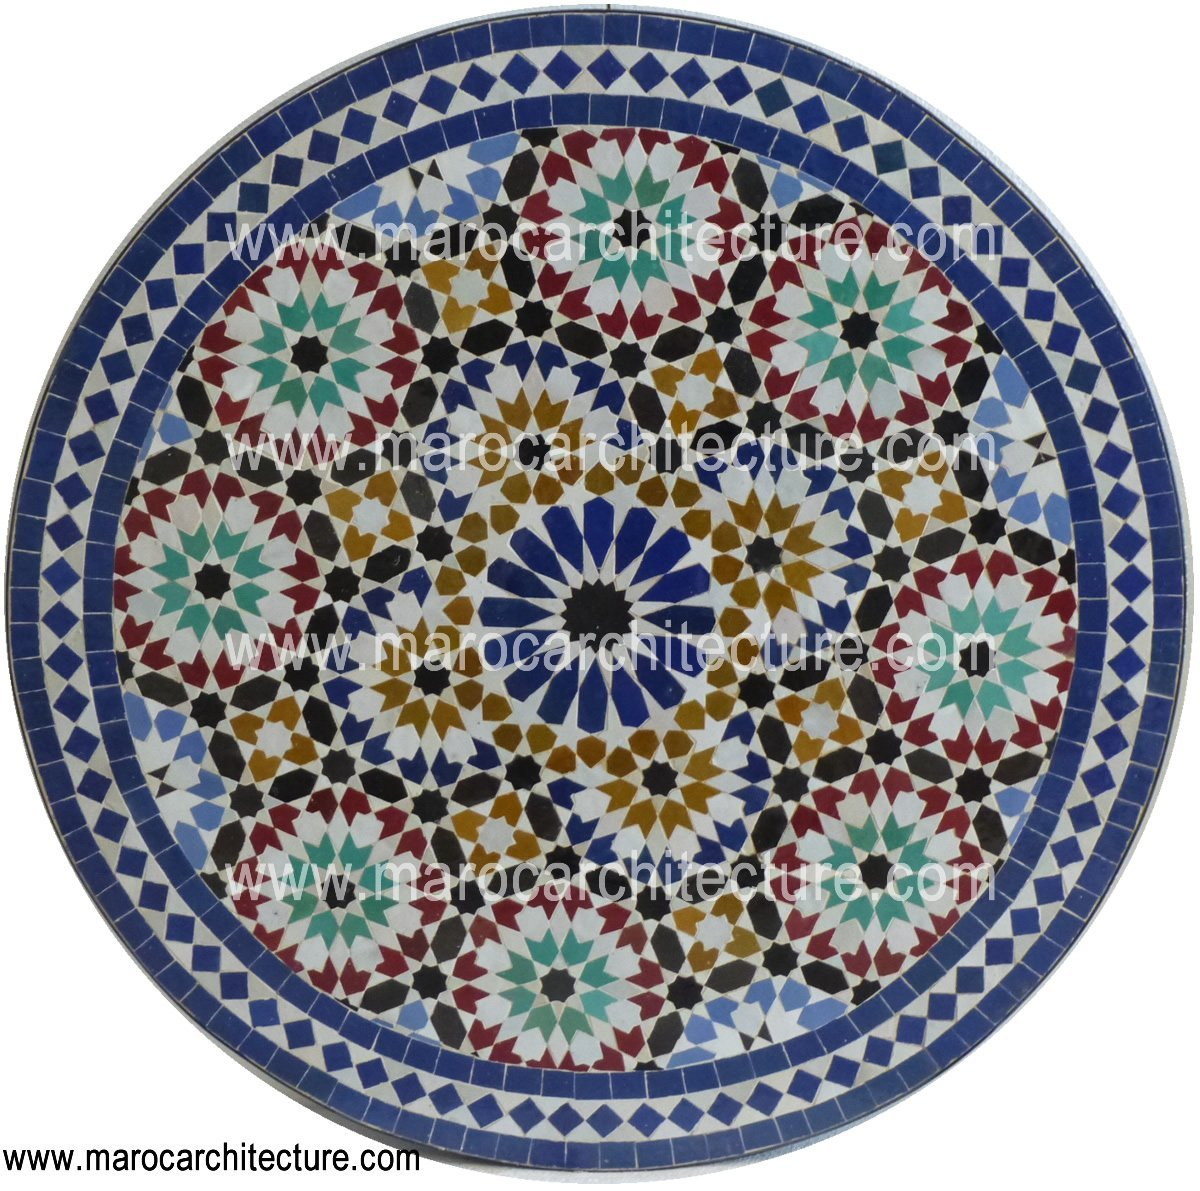 Sixteen Pointed Mosaic Table Top 1908